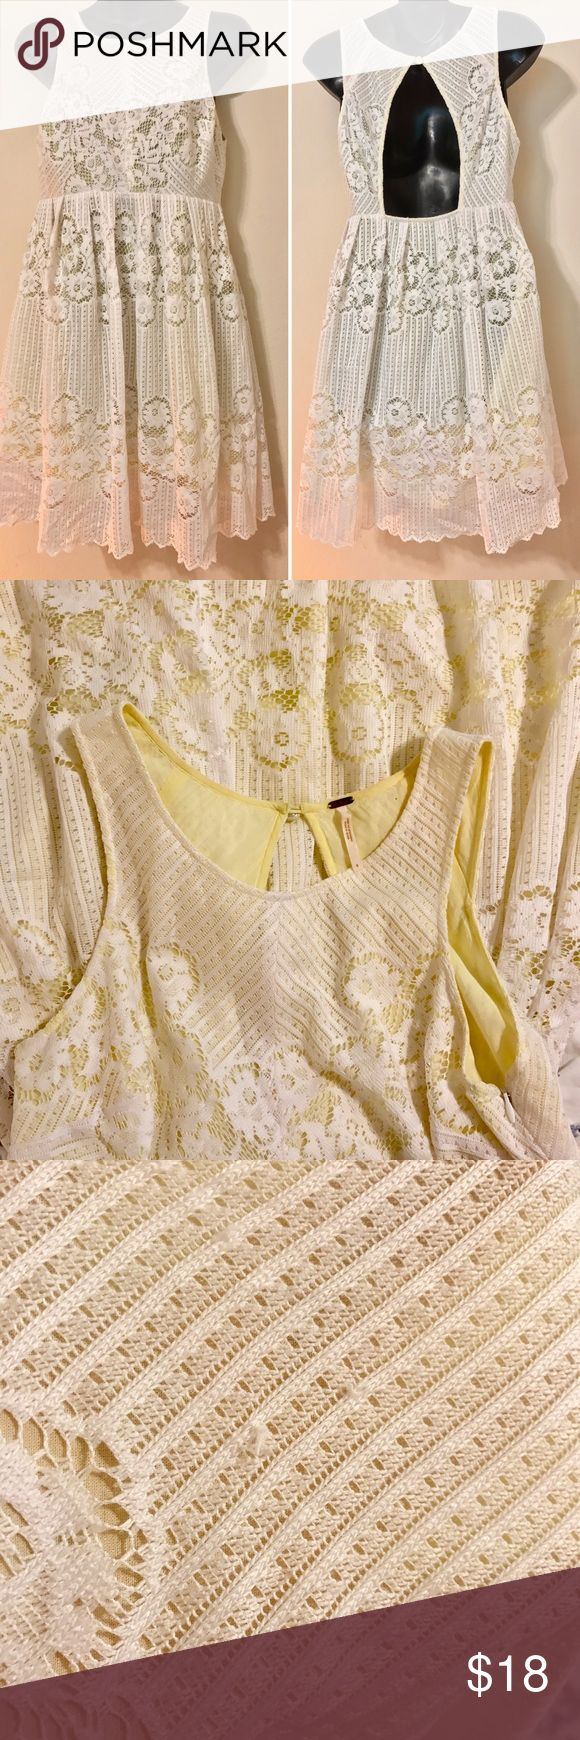 """FREE PEOPLE WHITE YELLOW LACE DRESS BACK CUTOUT FREE PEOPLE SIZE 6 WHITE YELLOW LACE DRESS BACK CUTOUT SLEEVELESS FESTIVAL BOHO LACE HAS A FEW MINOR SNAGS. SEE PICS. DOES NOT AFFECT OVERALL LOOK OF THE DRESS. MEASUREMENTS LYING FLAT ARMPIT TO ARMPIT 18"""" WAIST 15"""" LENGTH 34"""" Free People Dresses Mini"""